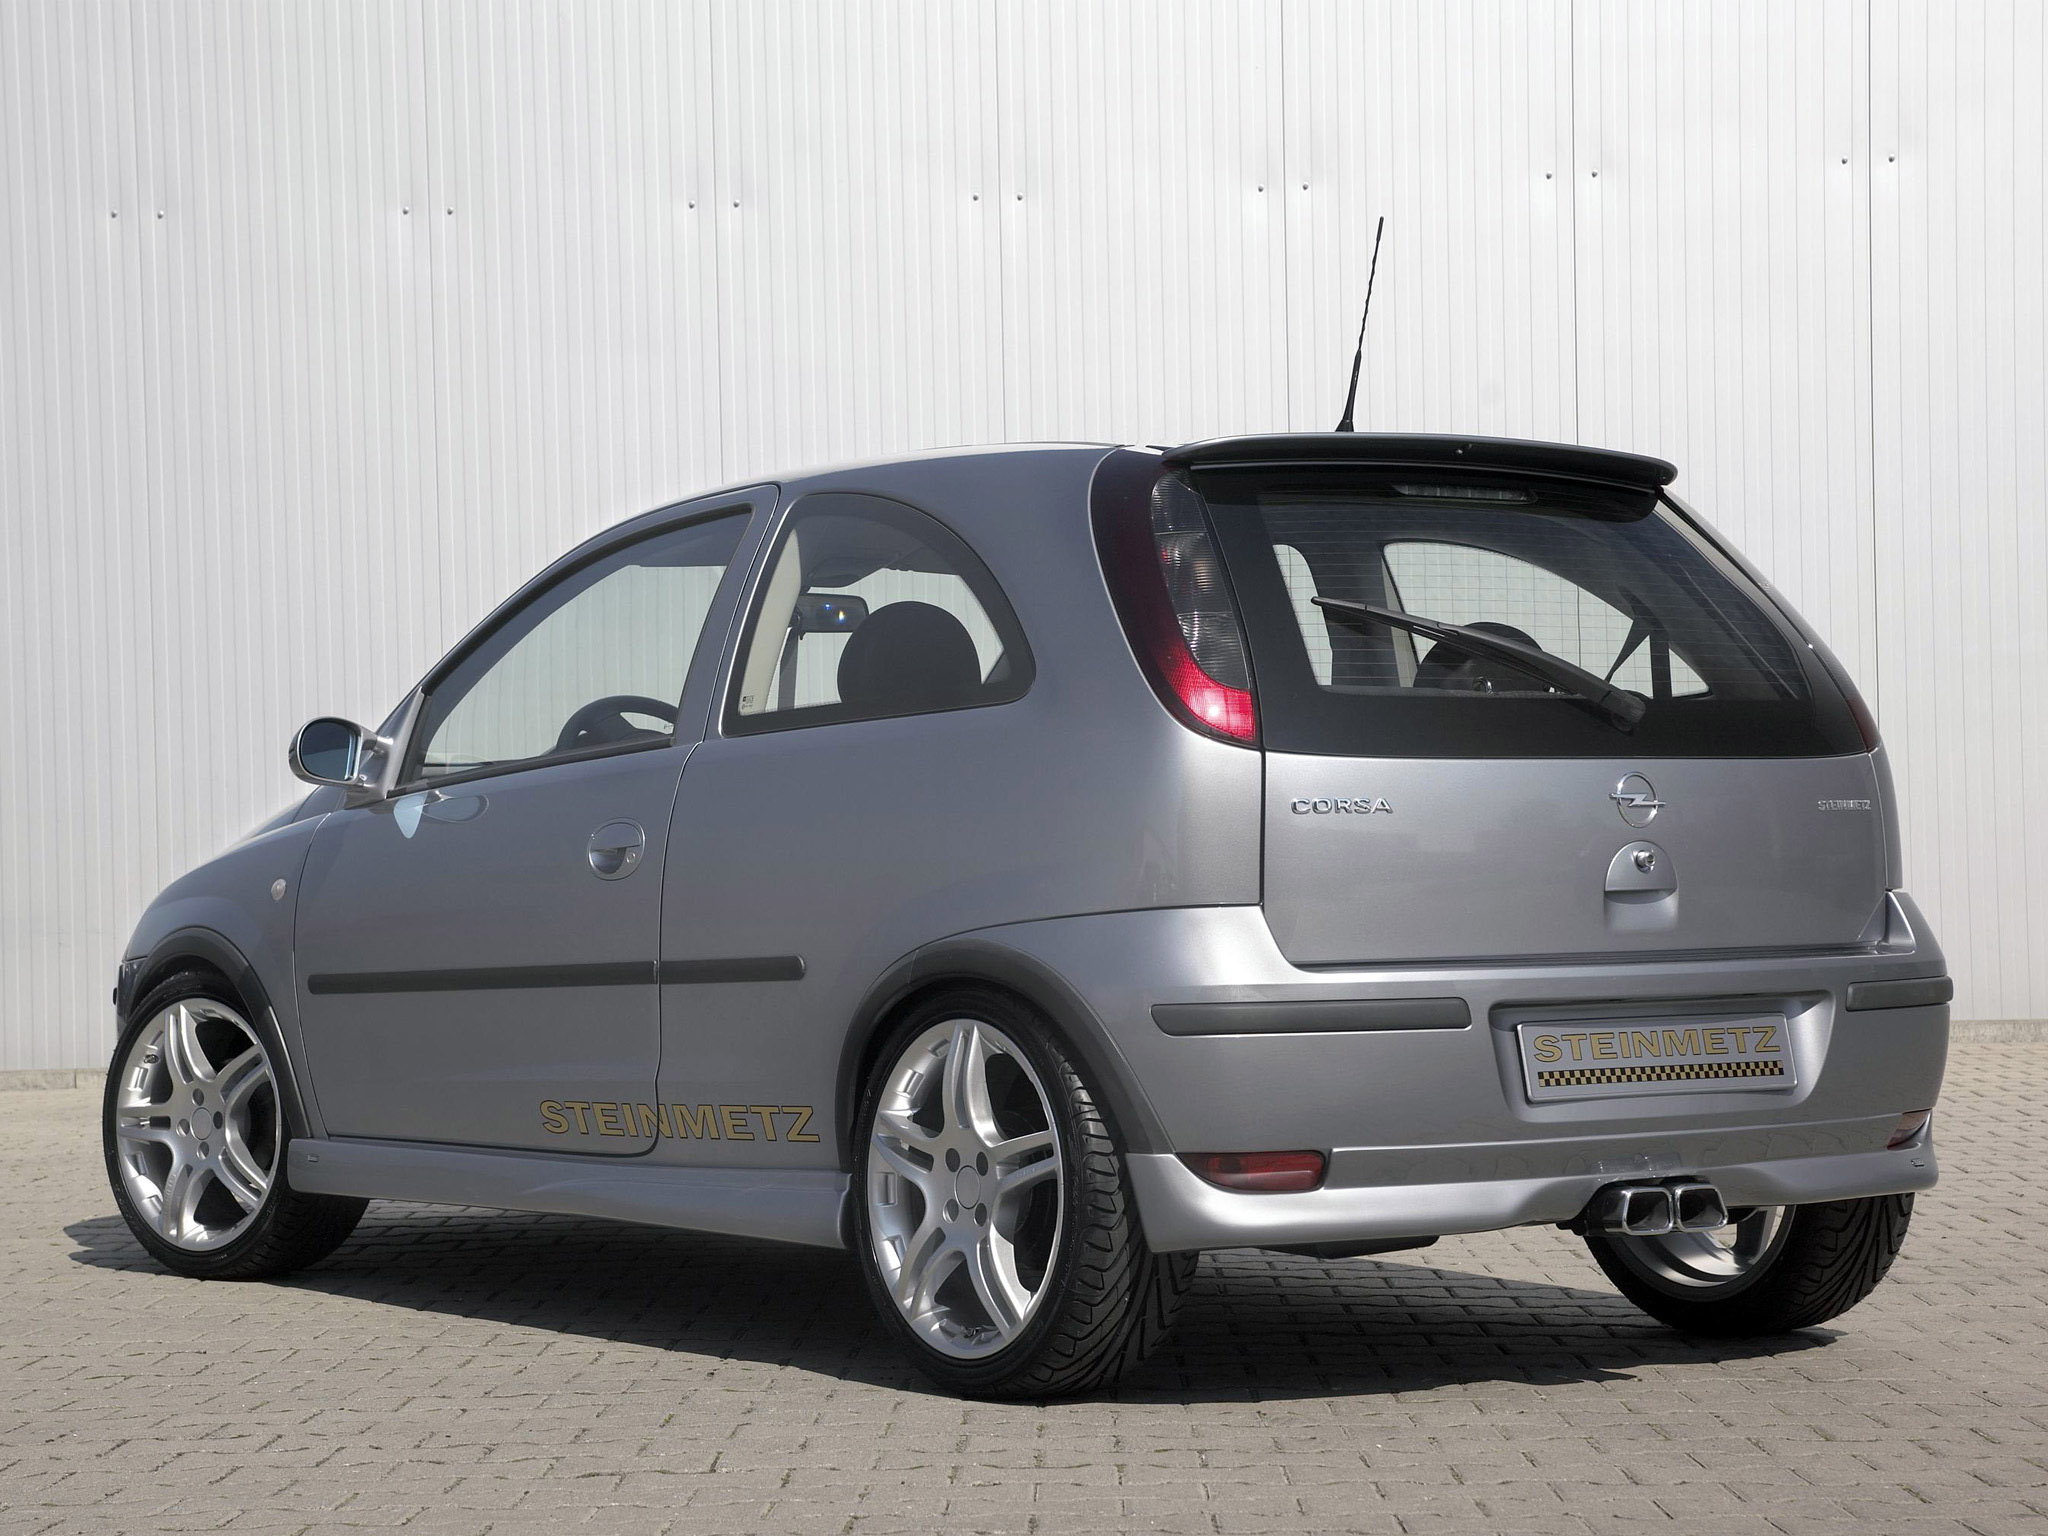 steinmetz opel corsa c 3 door 2004 steinmetz opel corsa c 3 door 2004 photo 03 car in pictures. Black Bedroom Furniture Sets. Home Design Ideas